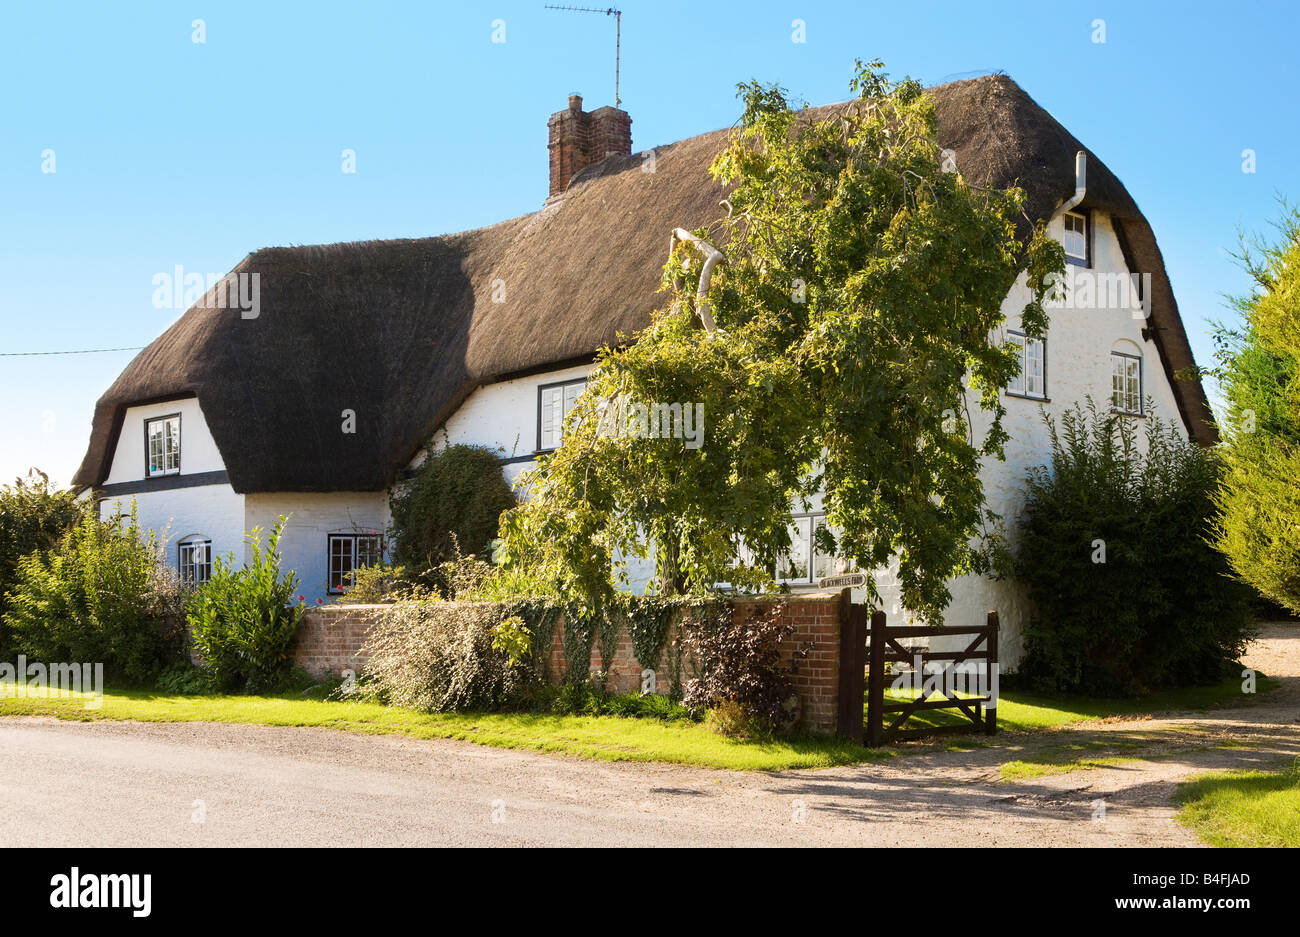 Typical English thatched country cottage in the village of Bishops Canning, Wiltshire, England, Great Britain, UK - Stock Image